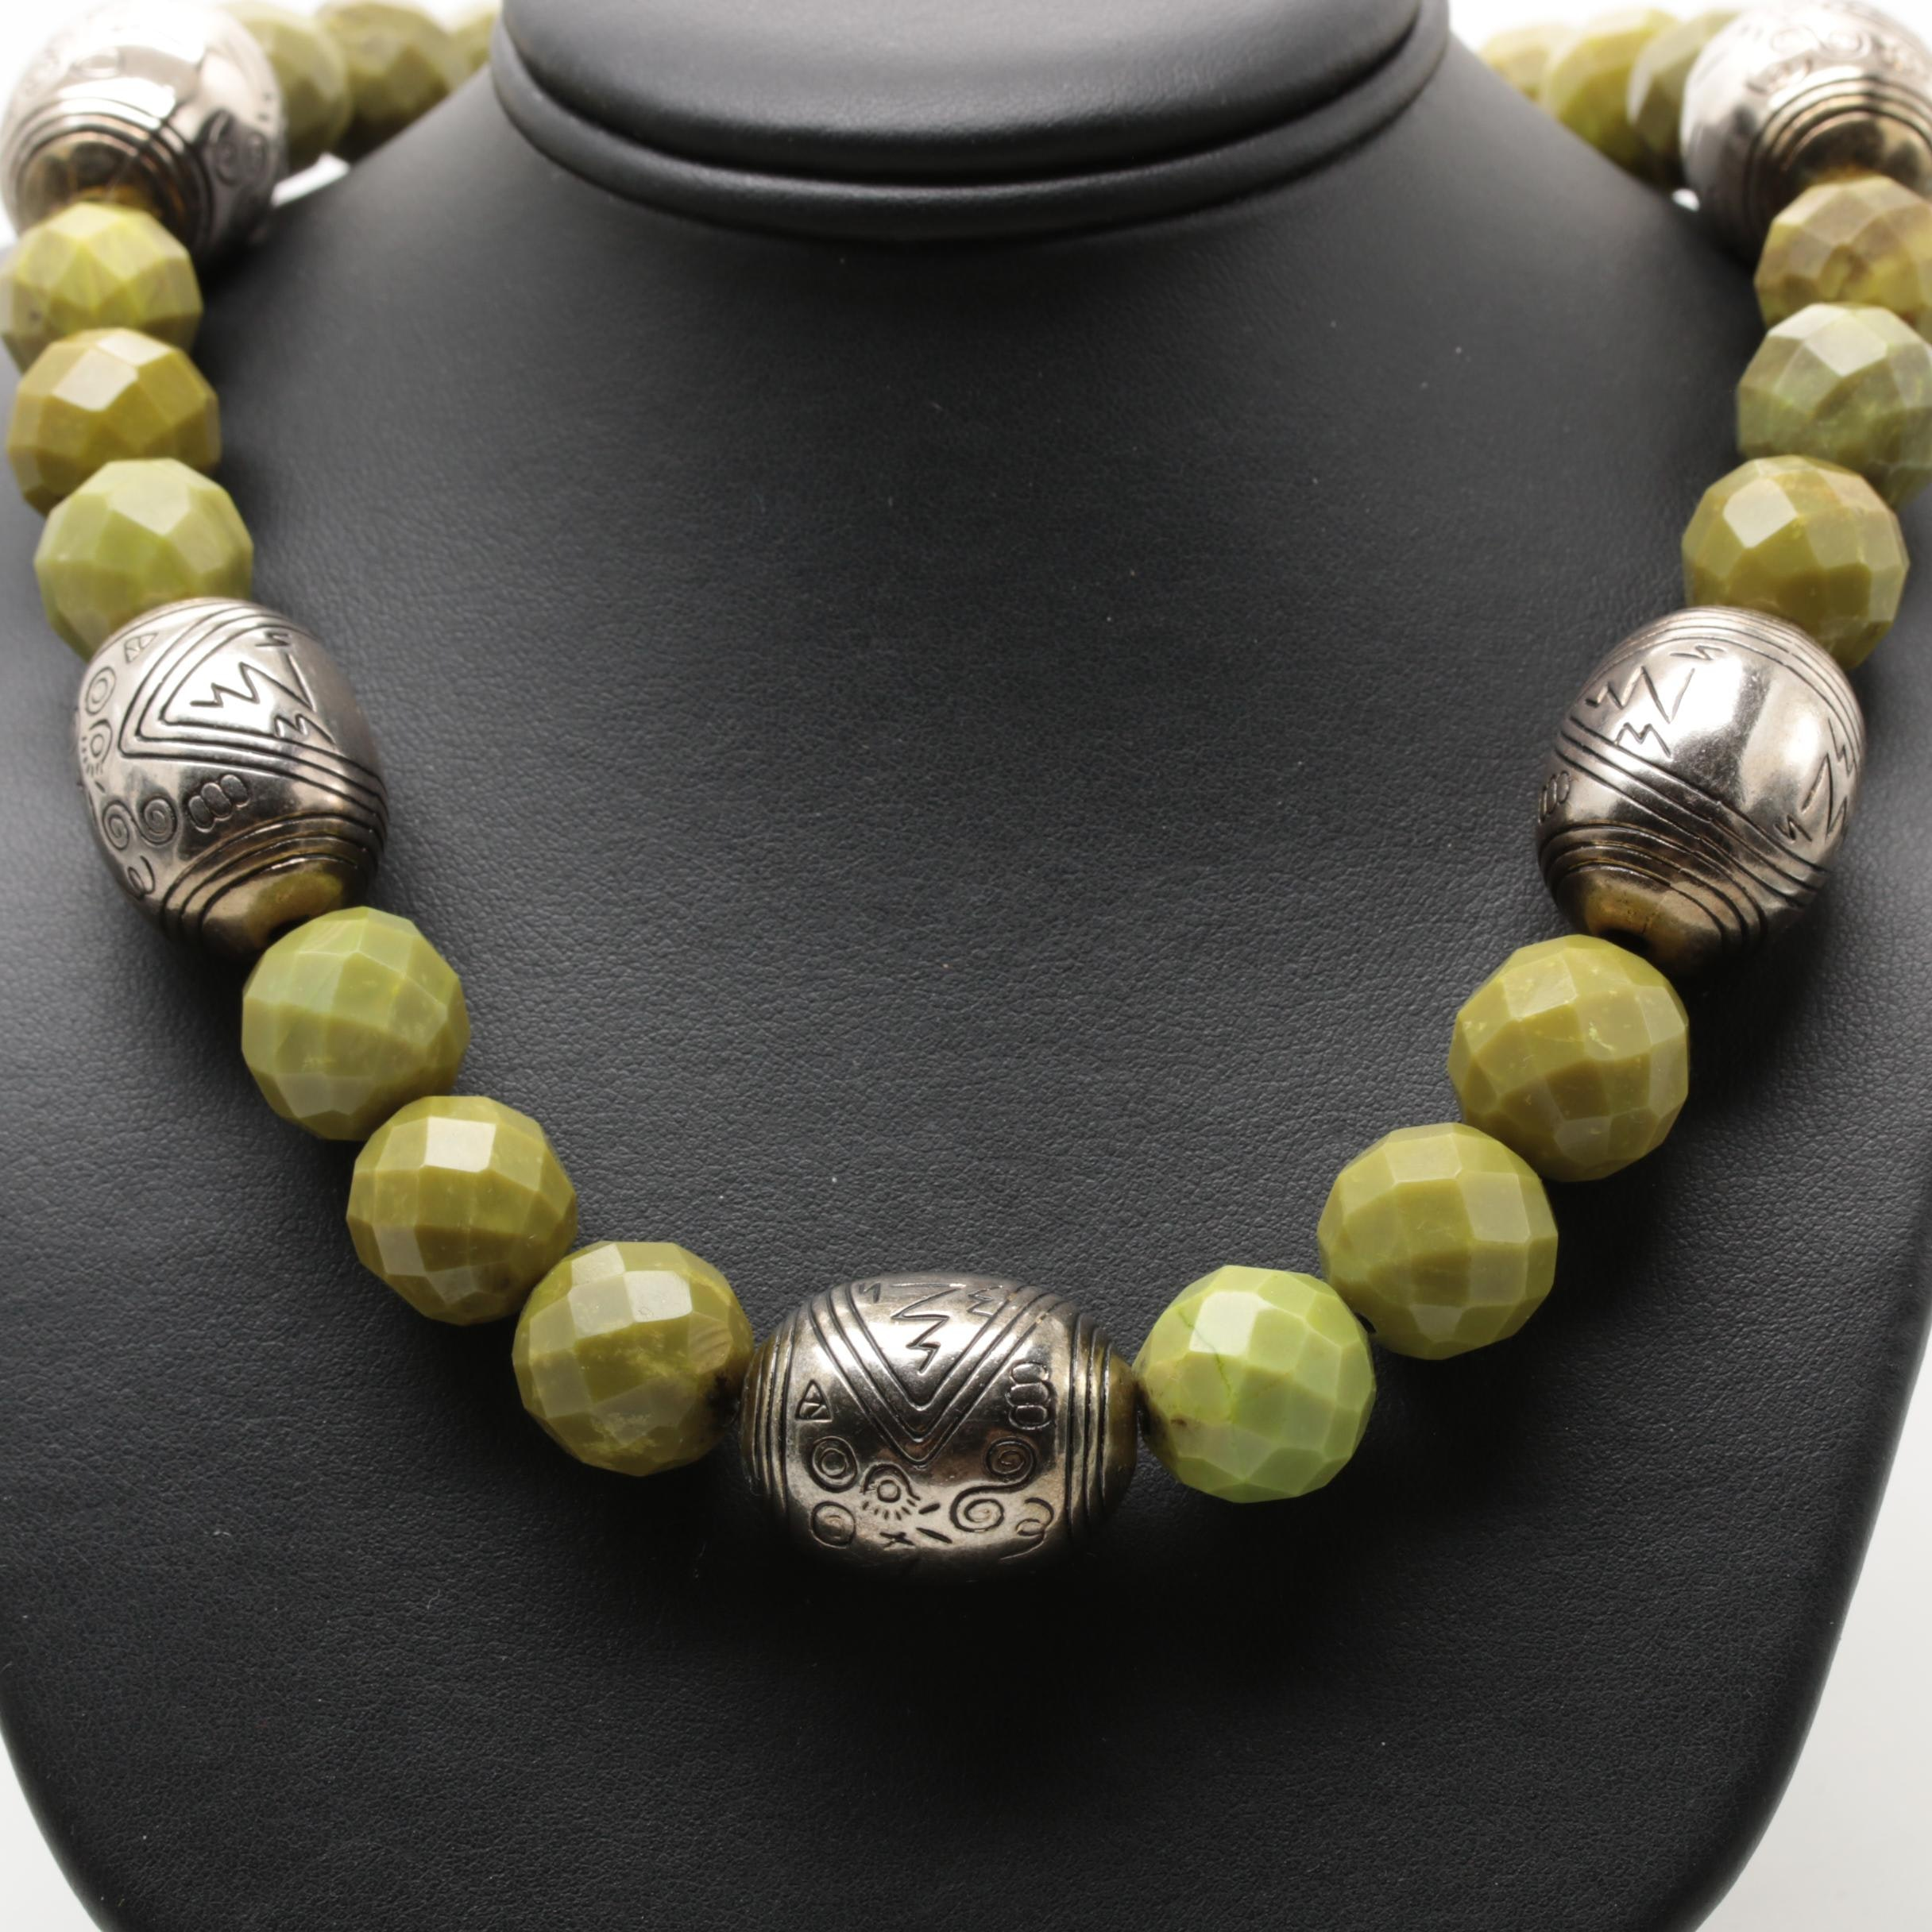 10K Yellow Gold Serpentine Necklace with Silver Tone Beads